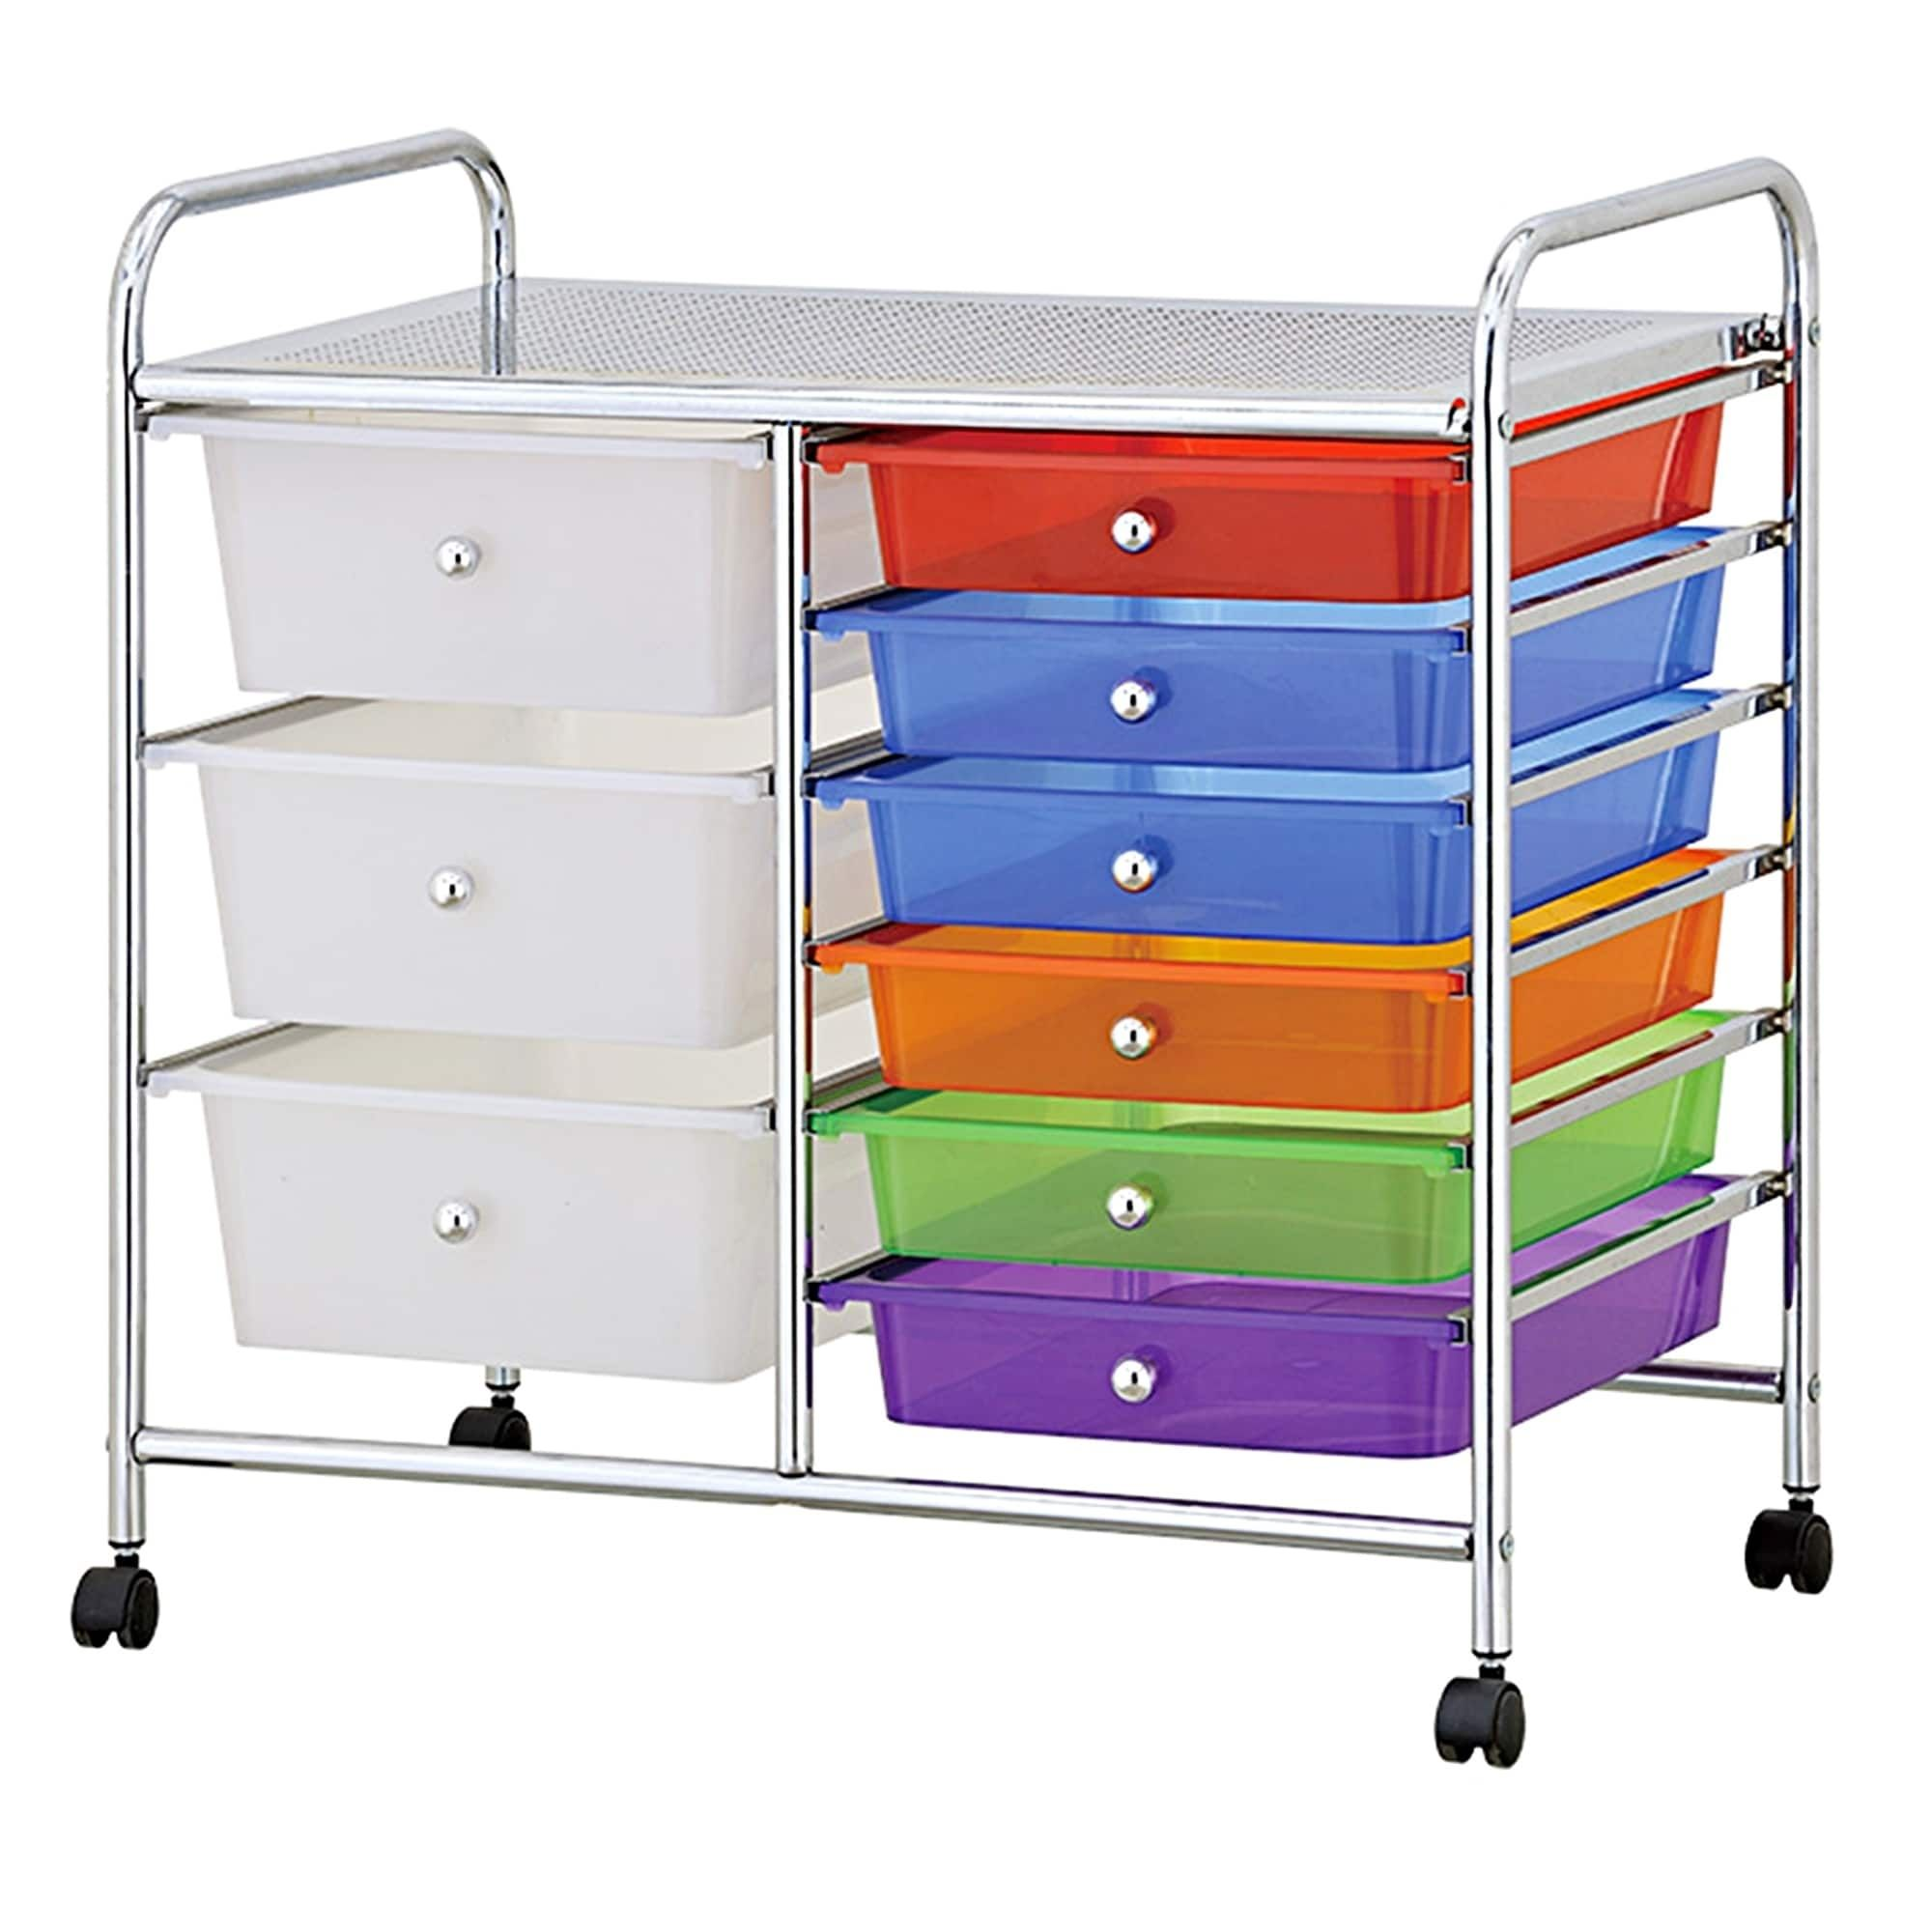 built wide drawer design three good drawers coolest casters stops for cart deep capacity white storage added looking portable heavy duty in mobility easy